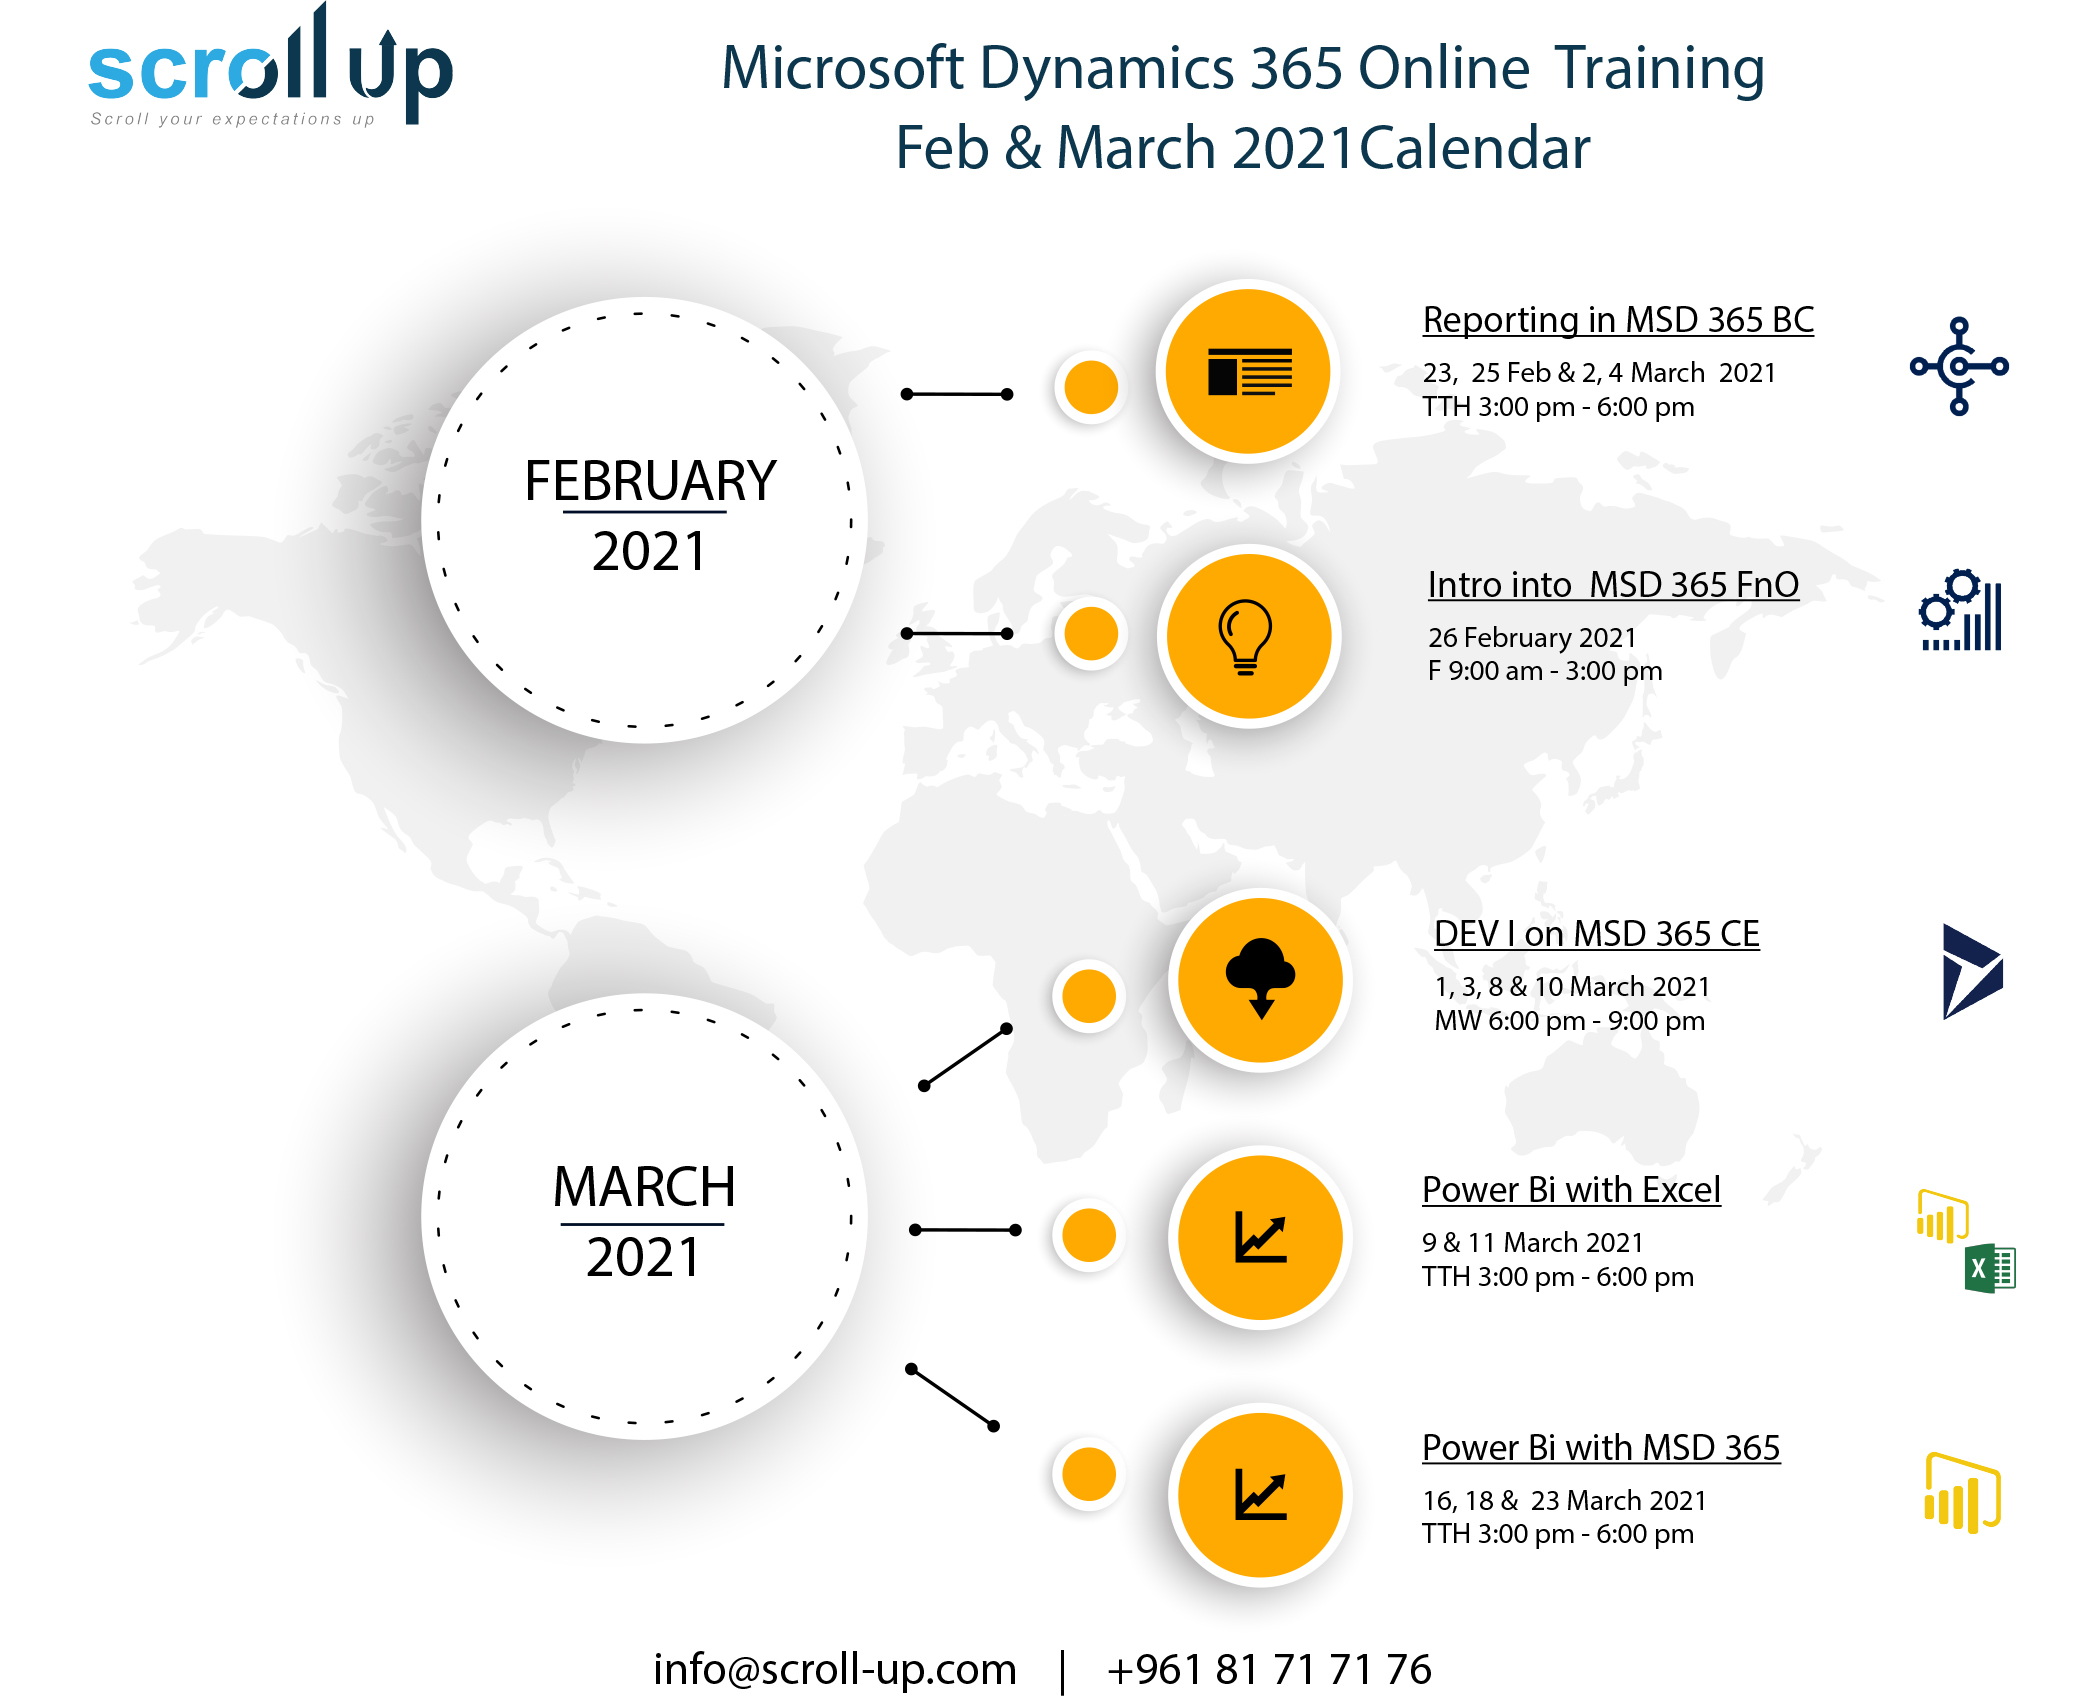 Microsoft Dynamics 365 Online Training Feb & March 2021 Calendar